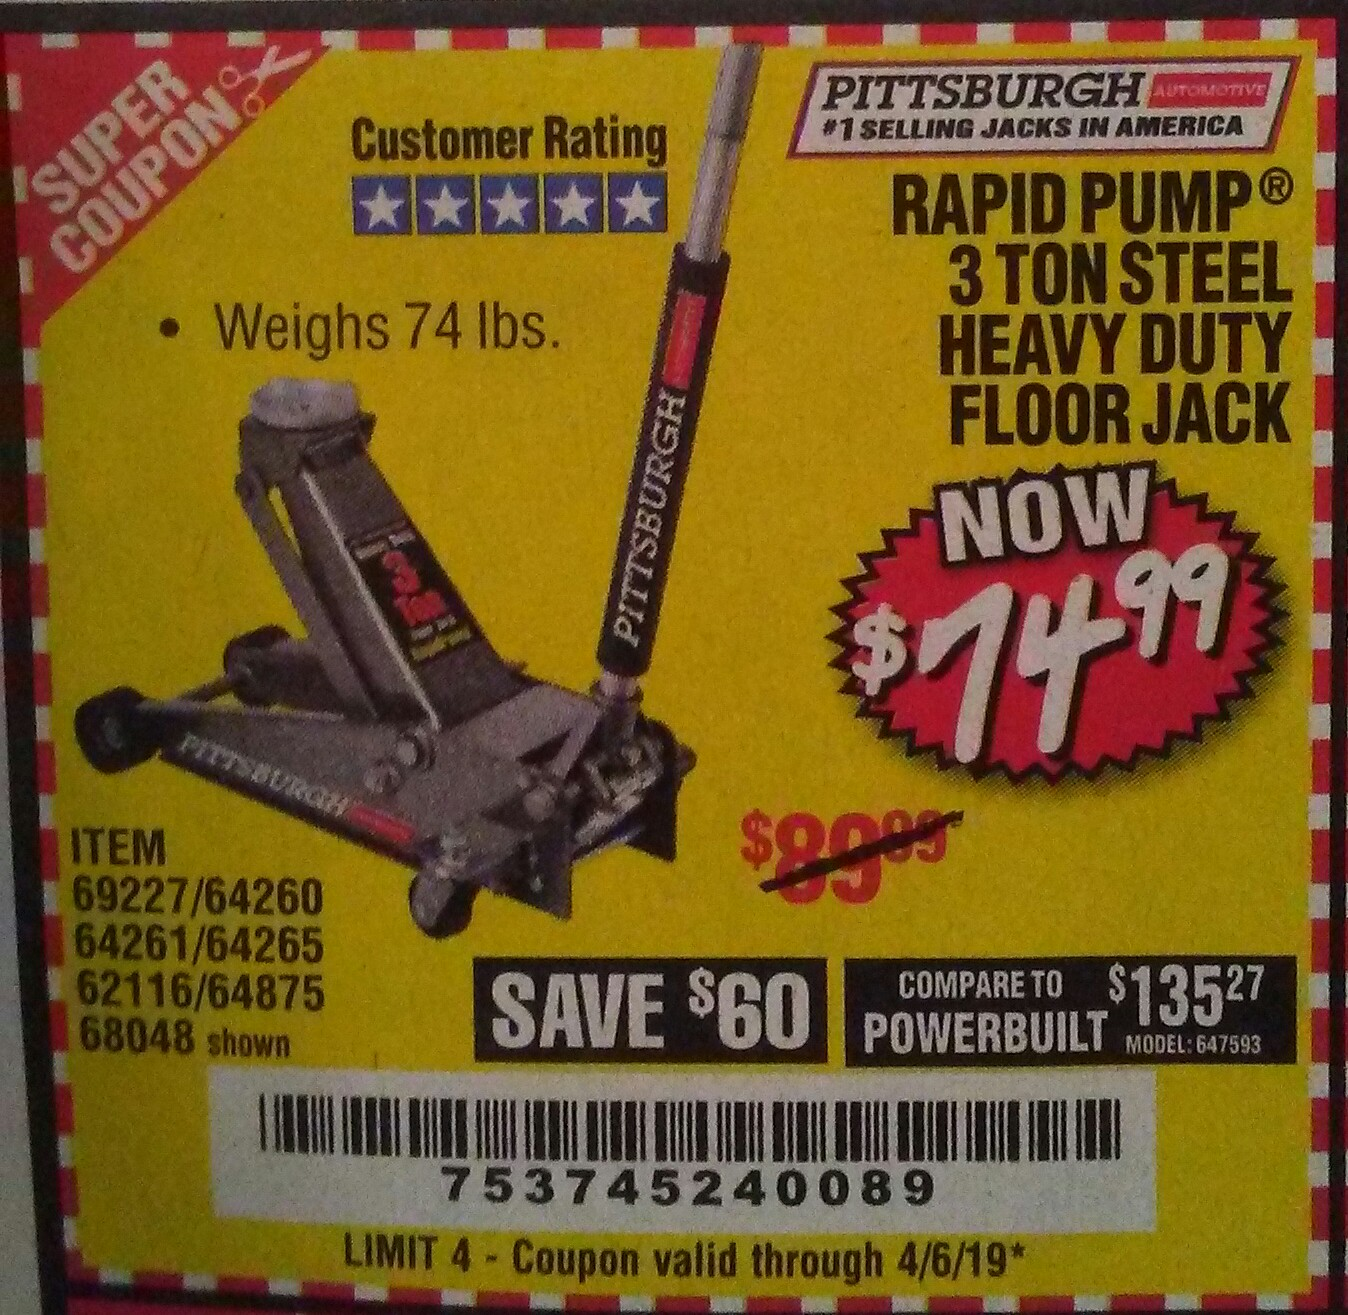 Harbor Freight Coupon, HF Coupons - Rapid pump 3 ton steel floor jack